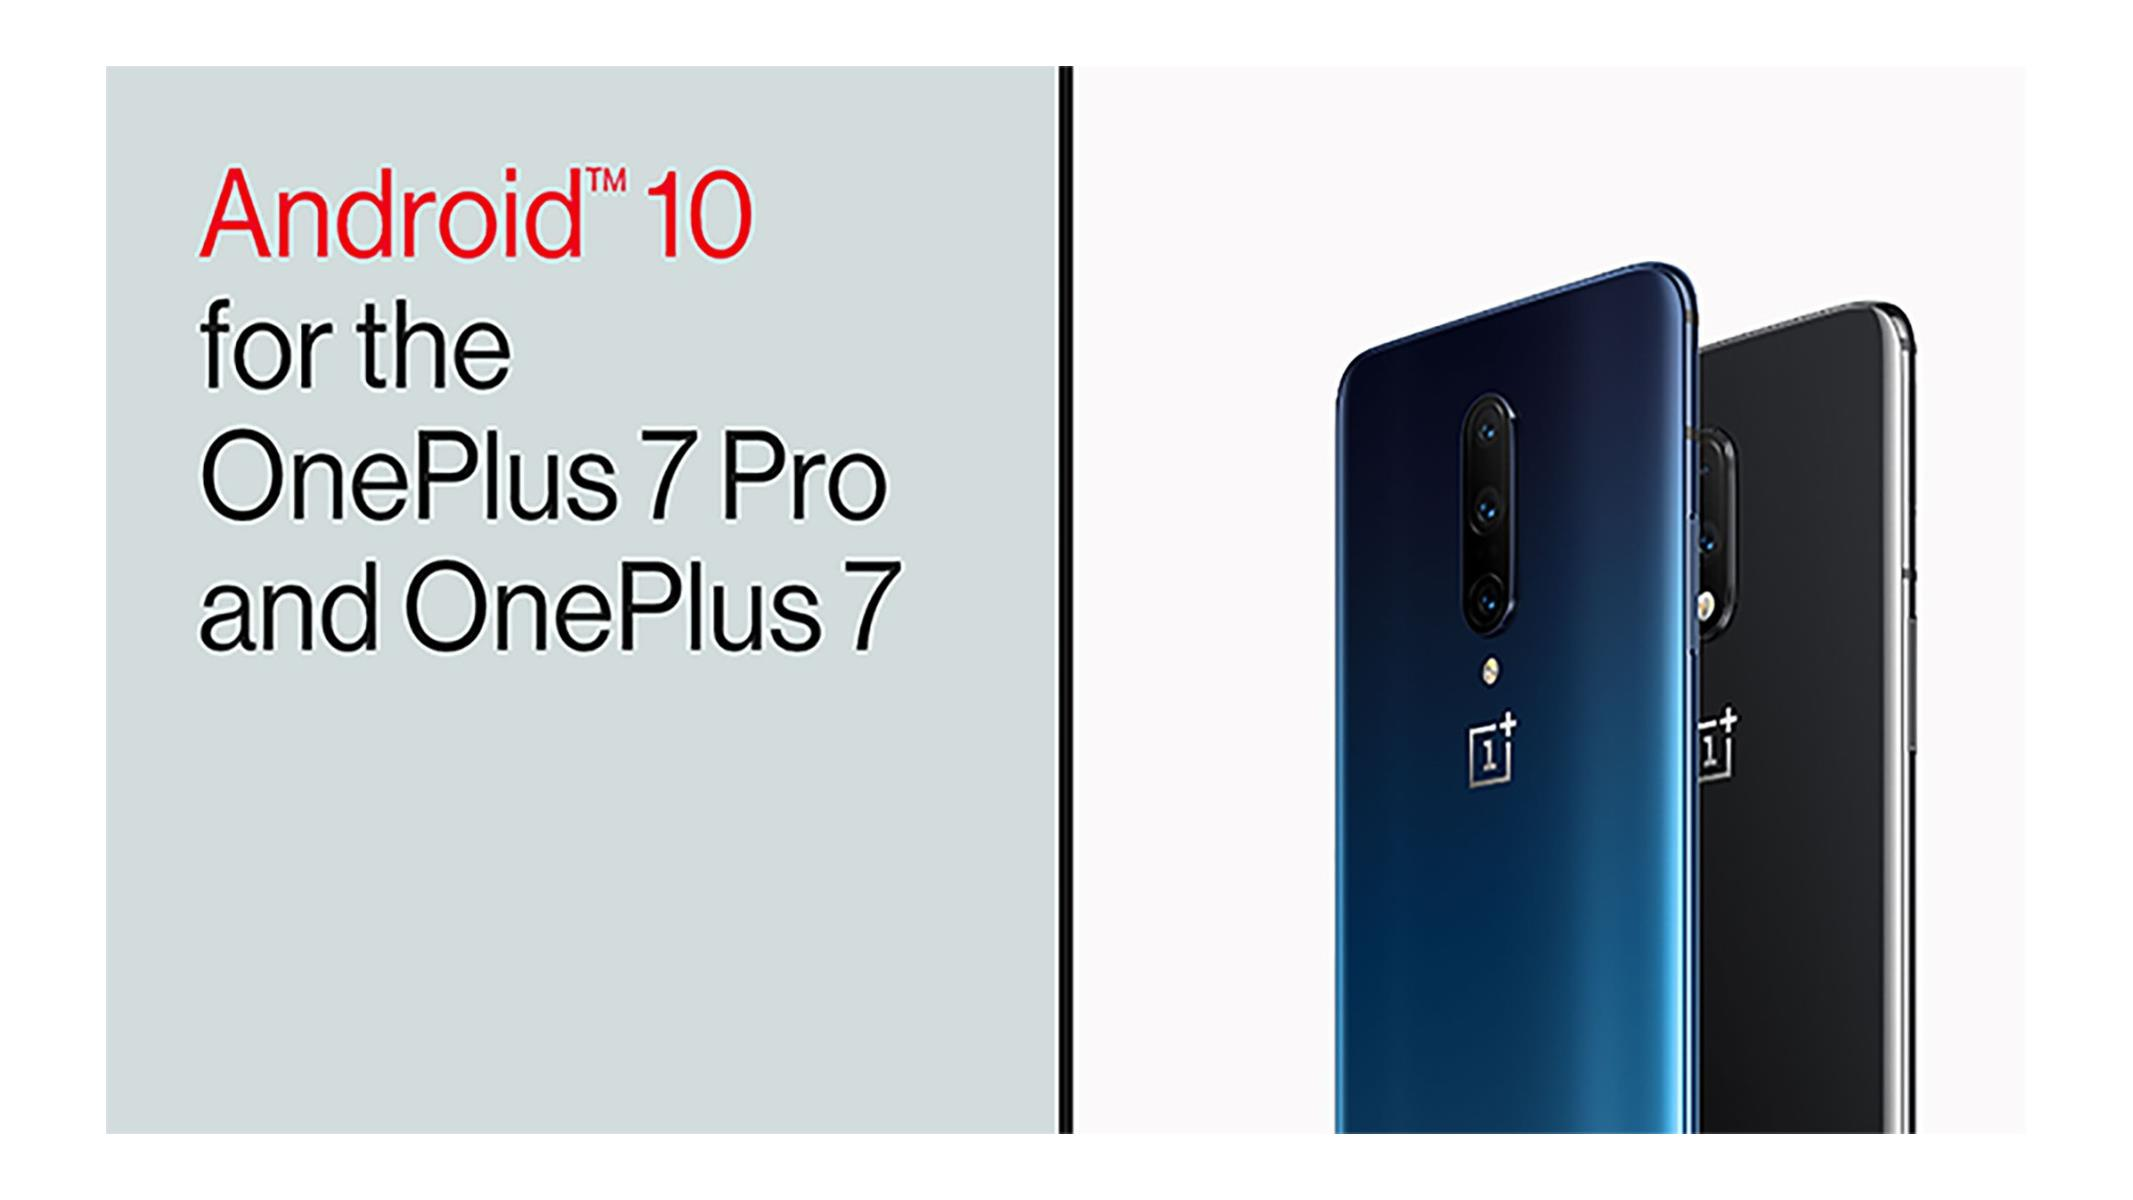 Android 10 Arrives For And OnePlus 7 And OnePlus 7 Pro, Check Update Now